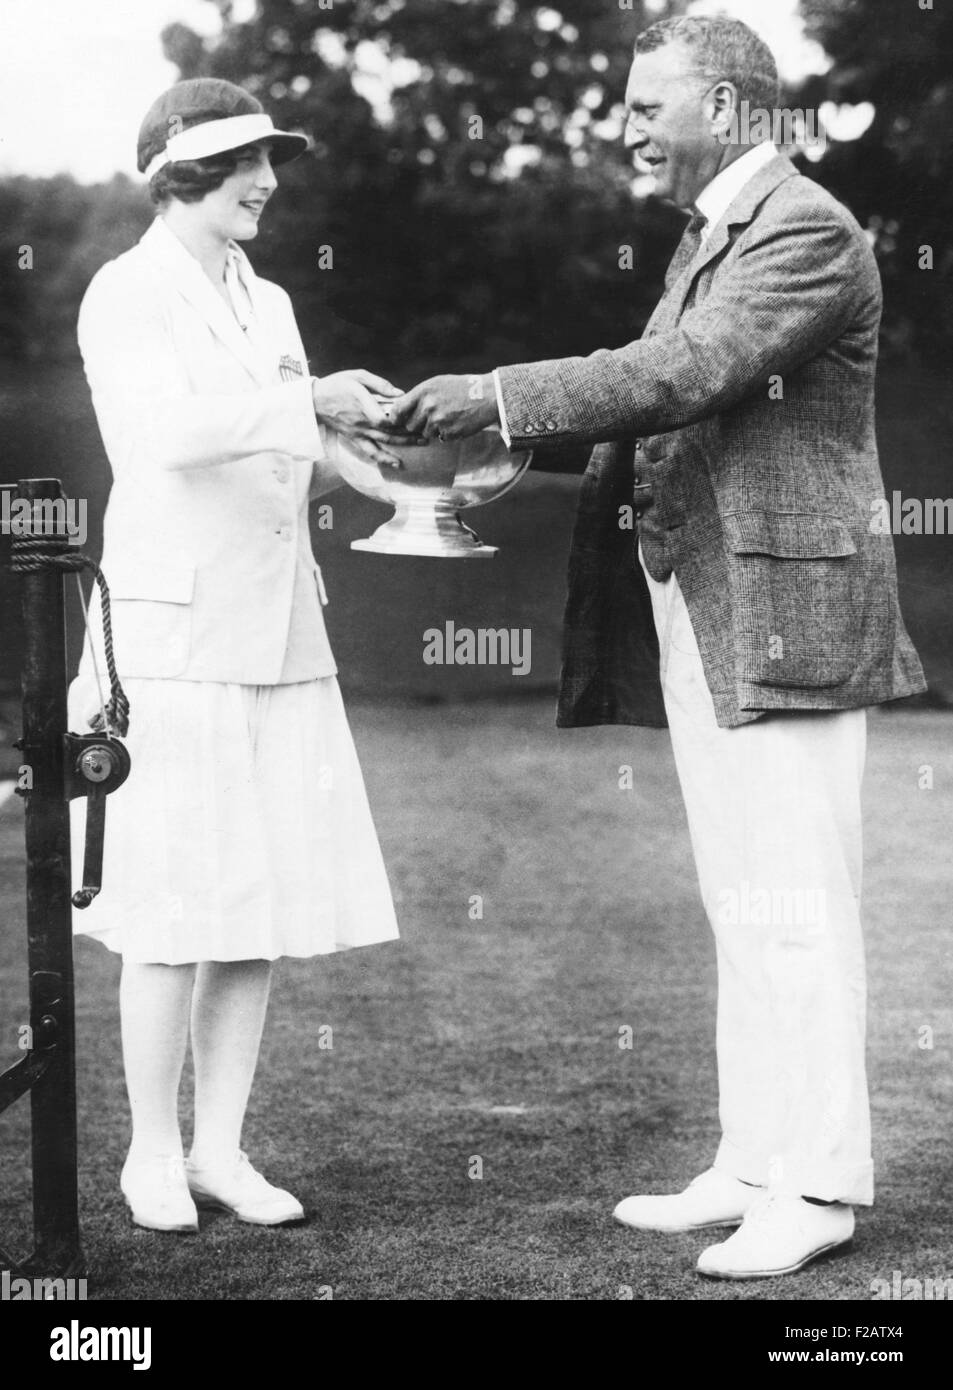 Helen Wills, tennis champion from California receiving trophy. Ca. 1925. (CSU_2015_11_1569) - Stock Image